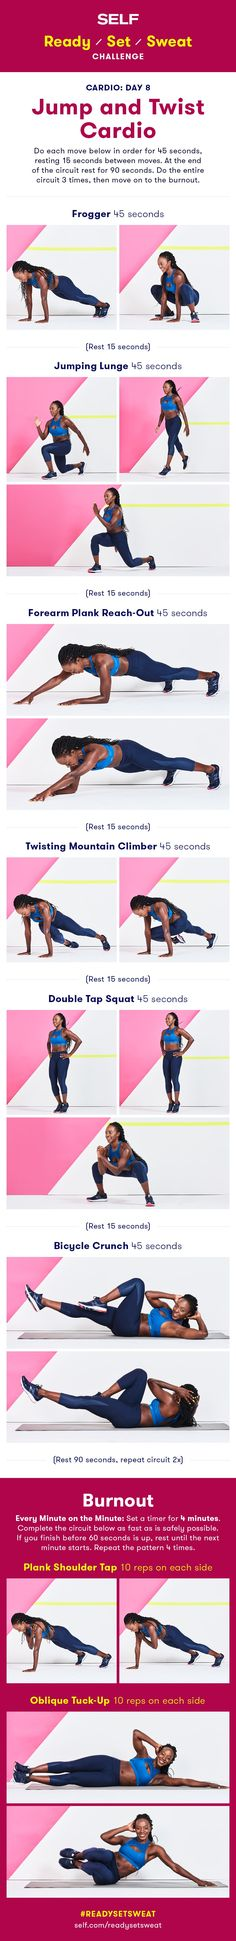 Jump and Twist Cardio Workout | Posted By: NewHowtoLoseBellyFat.com